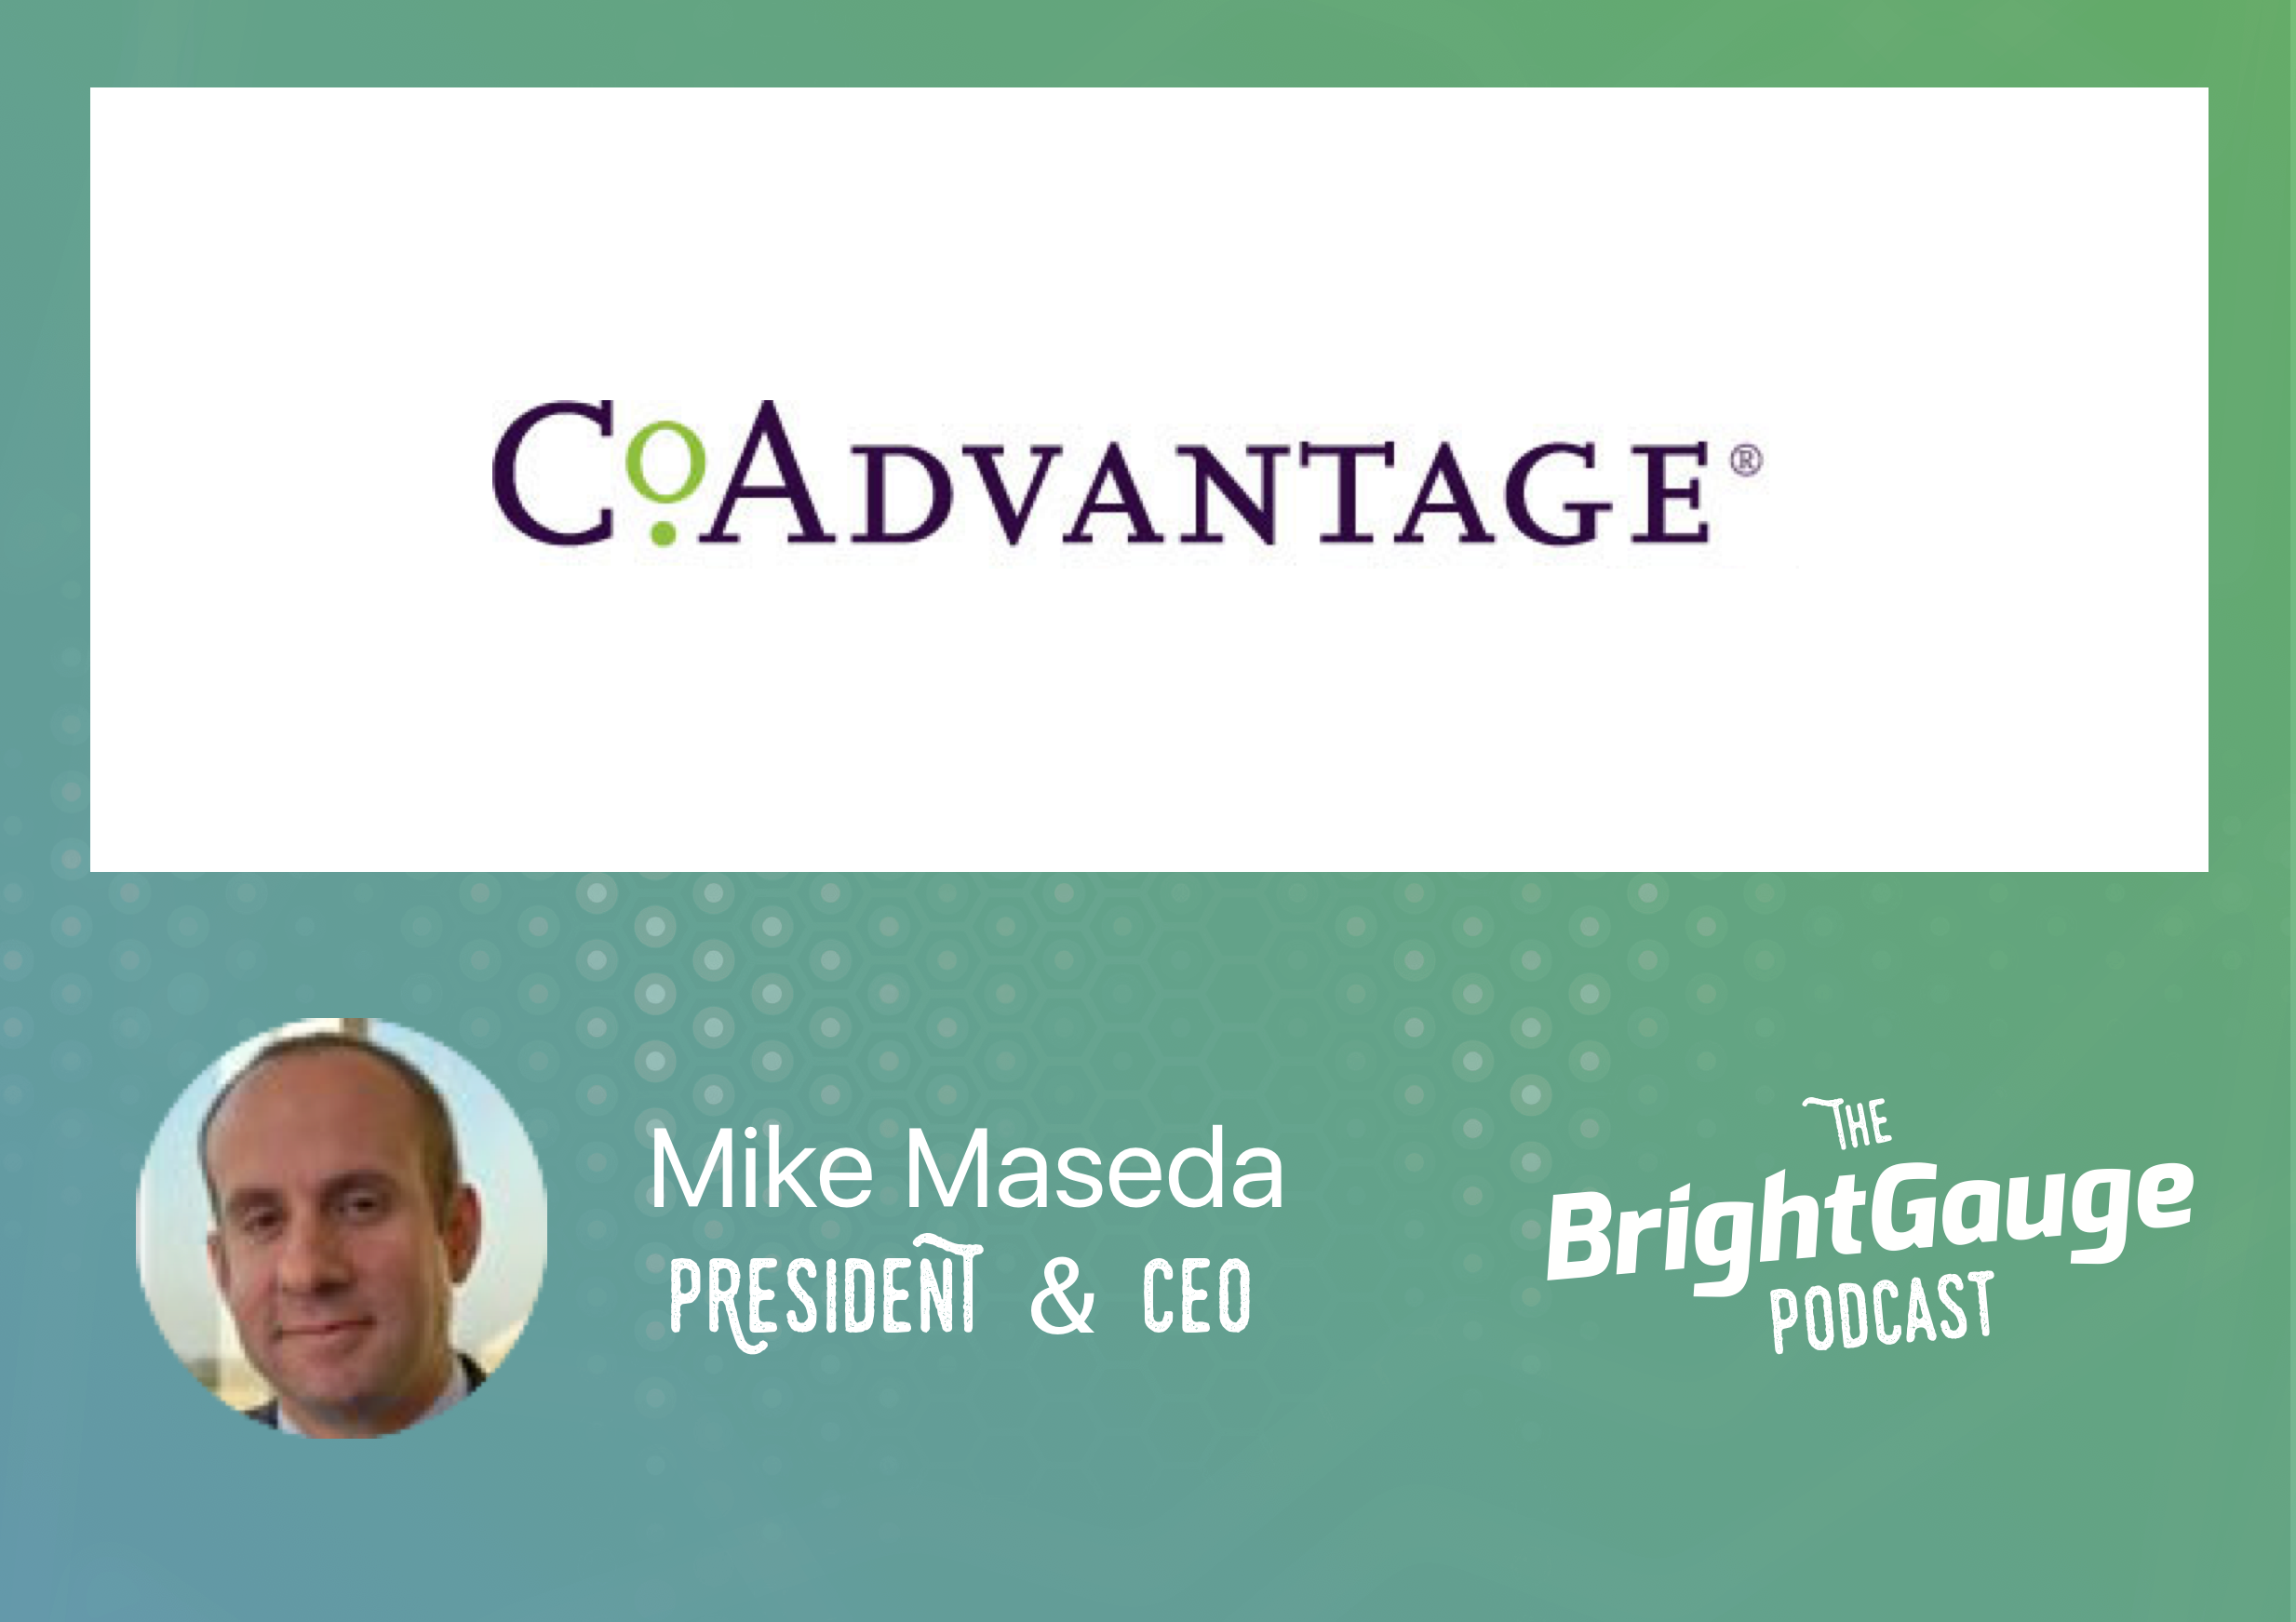 [Podcast] Episode 24 with Mike Maseda of CoAdvantage